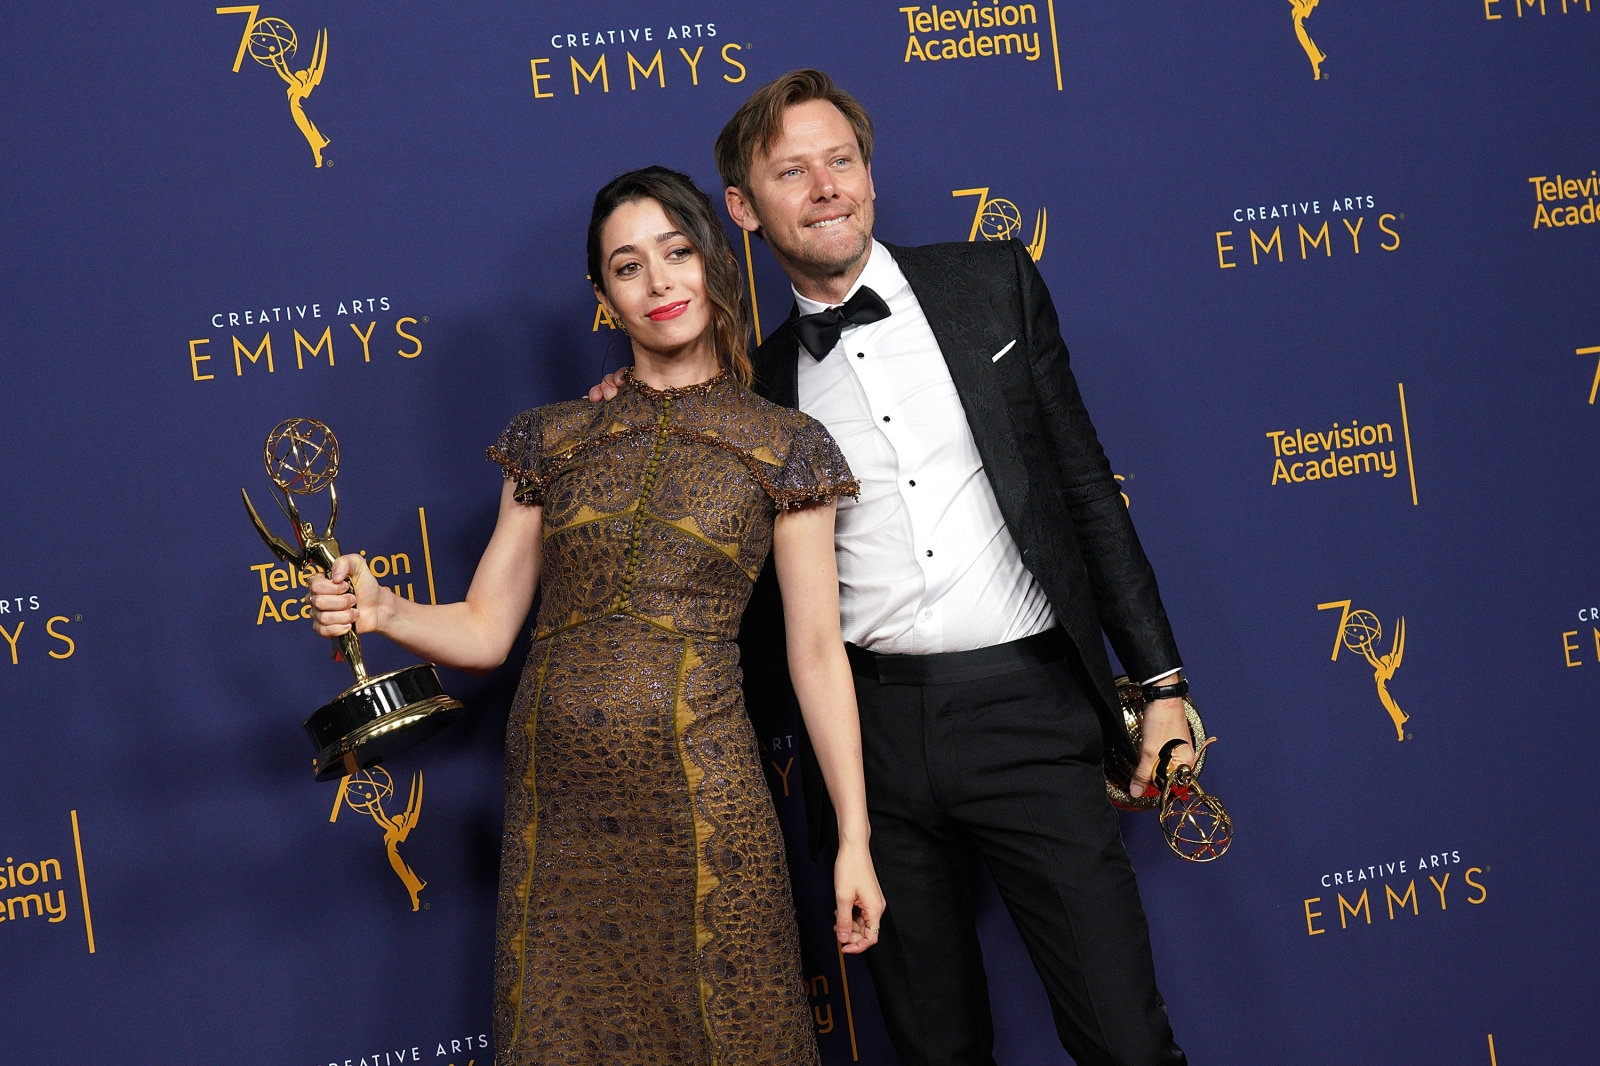 Netflix, Hulu and Amazon win numerous creative Emmy awards | DeviceDaily.com